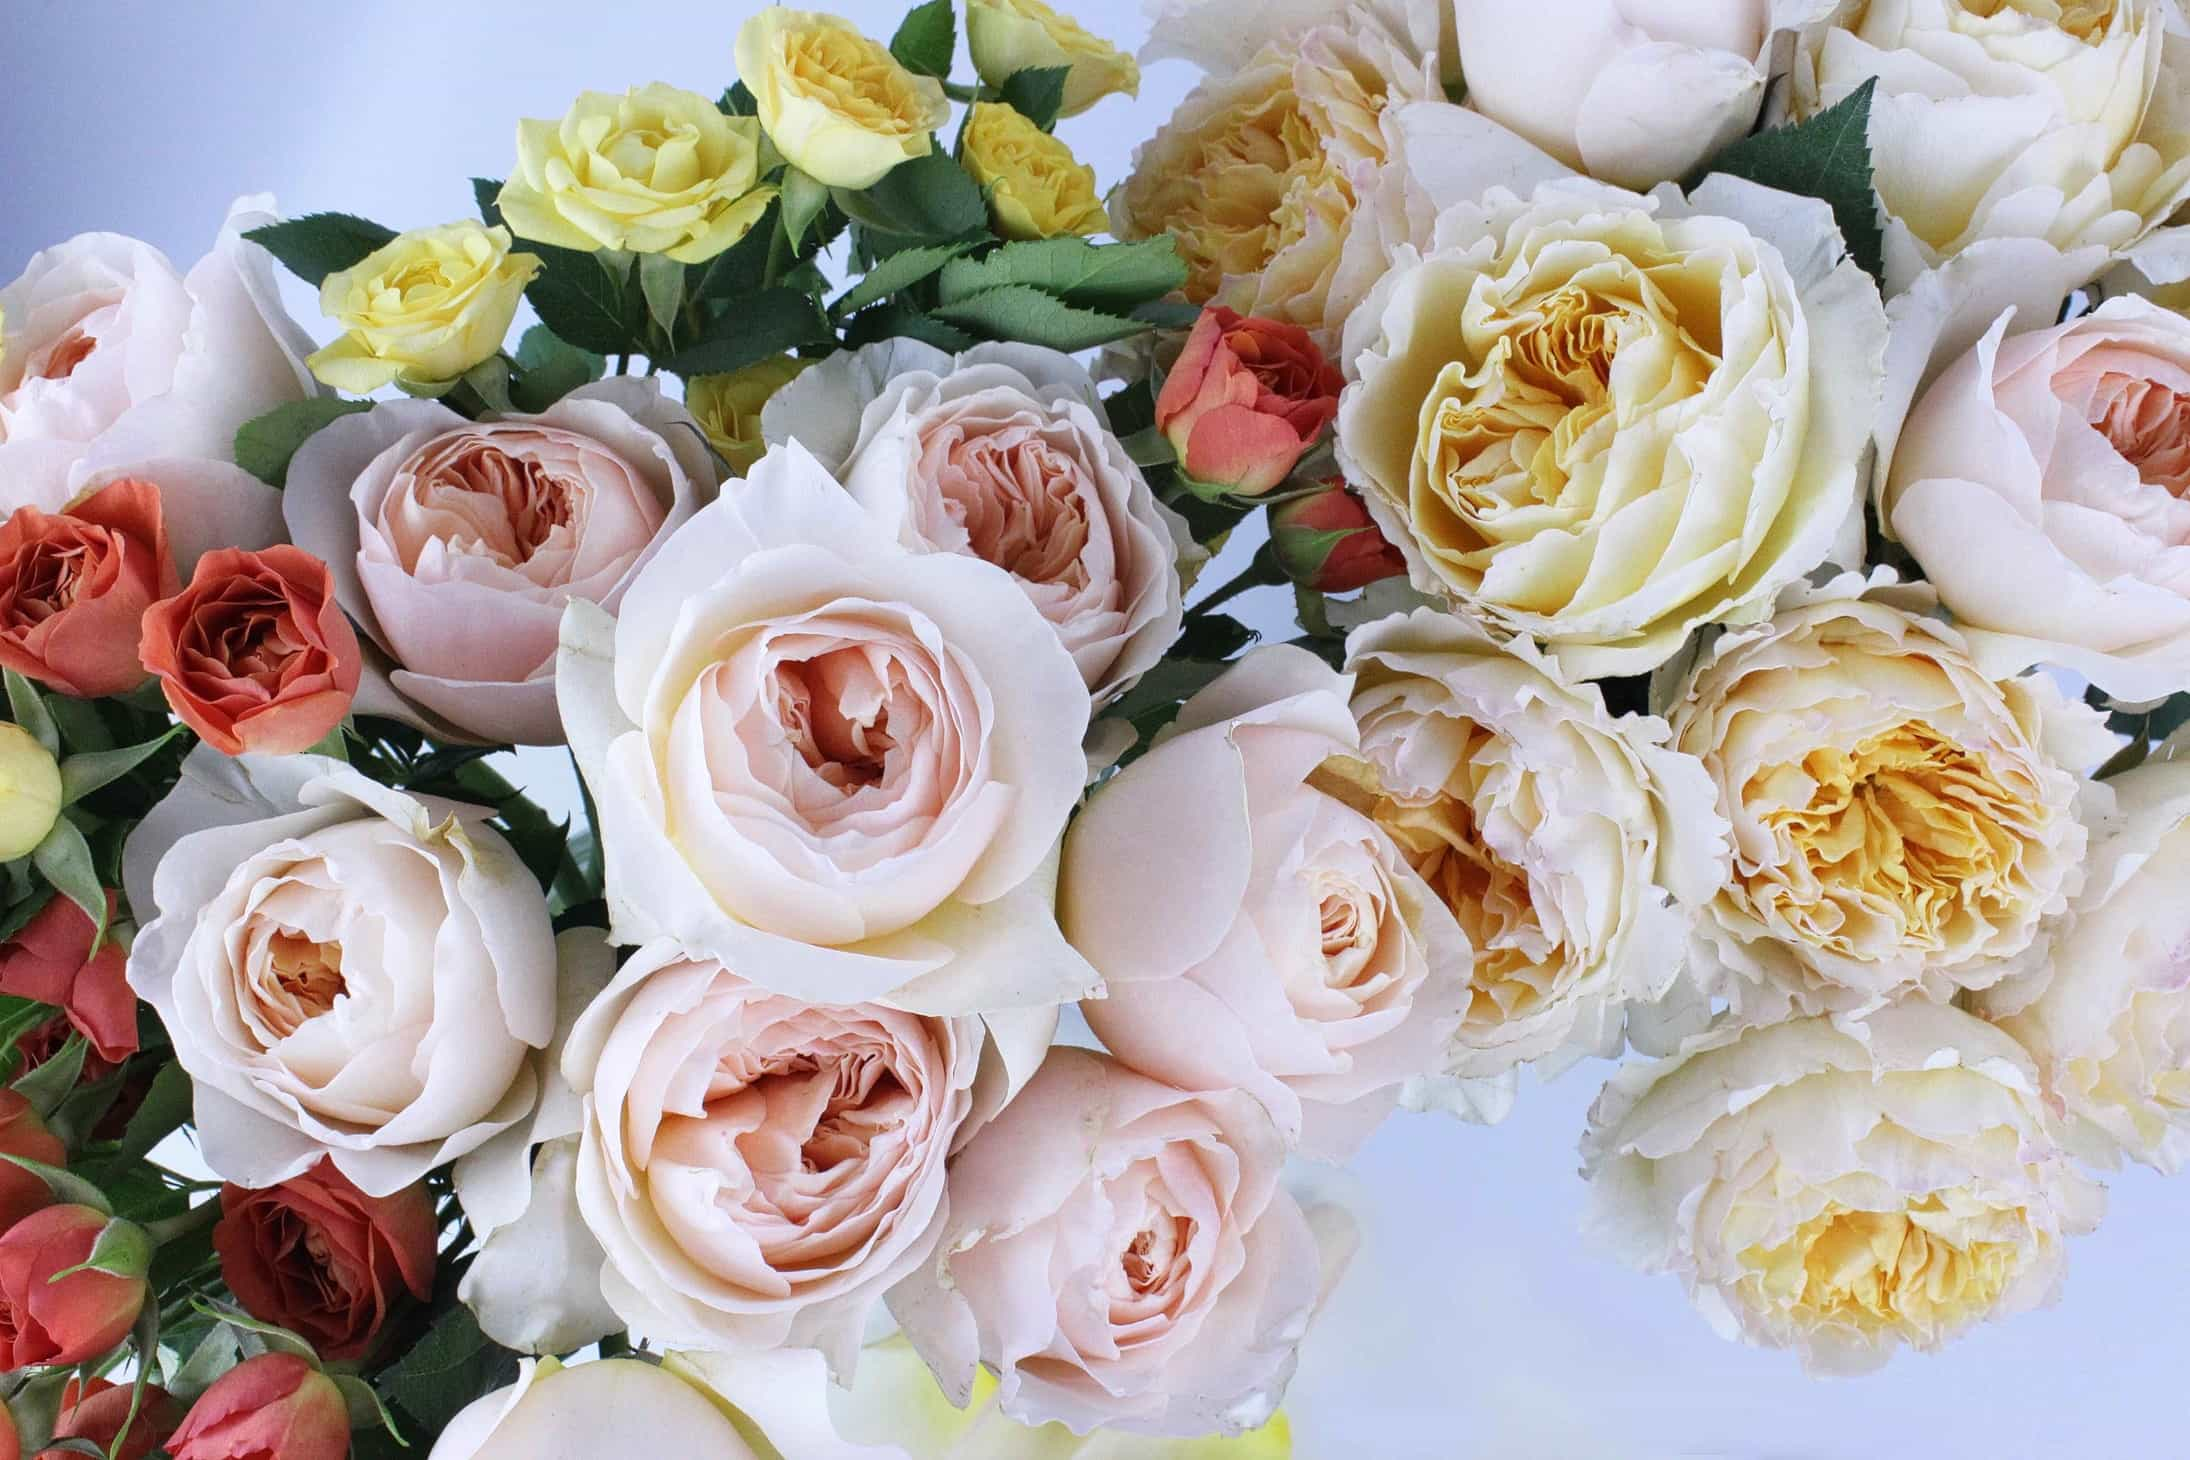 cut garden roses, cabbage roses in floristry, old roses, Rose Juliet